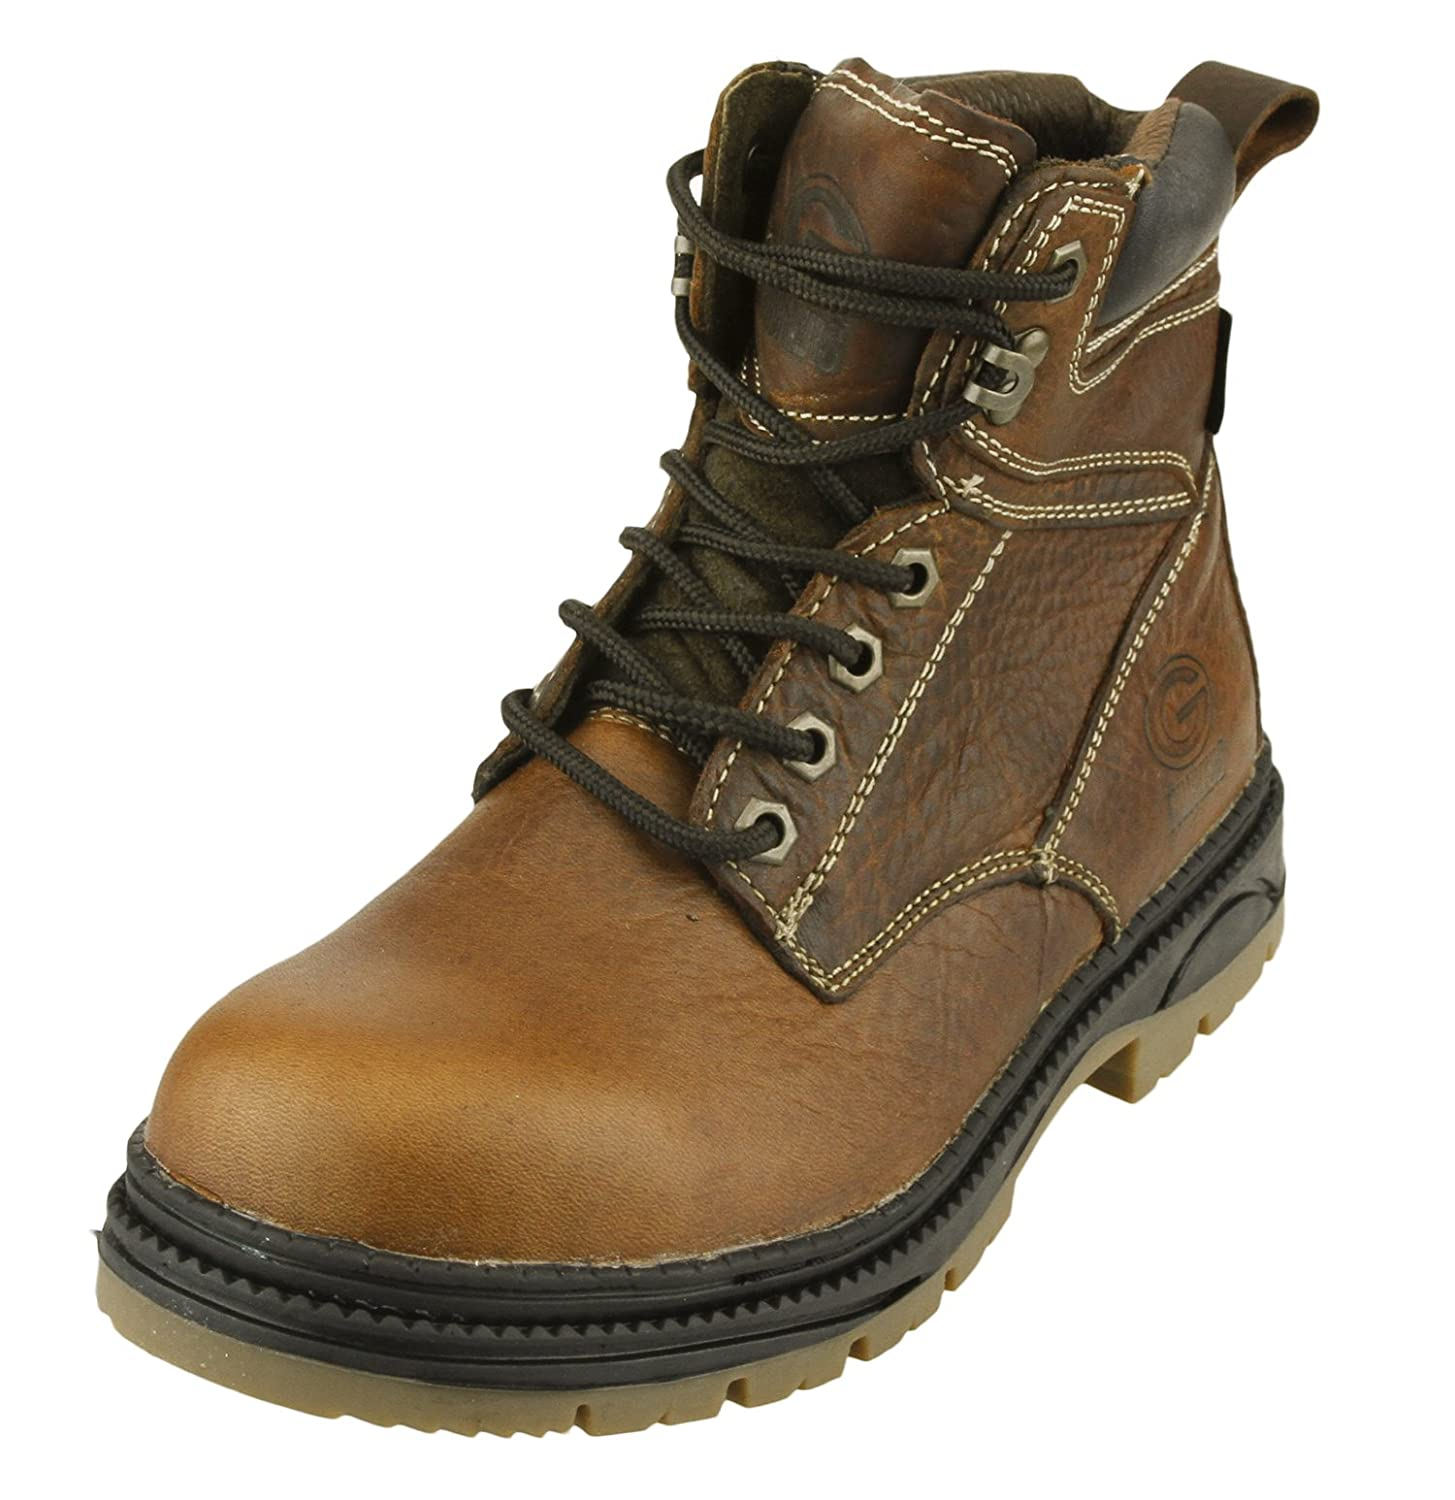 Green Bay Packers NFL Mens Rounded Steel Toe Lace up Leather Work Boots, Brown